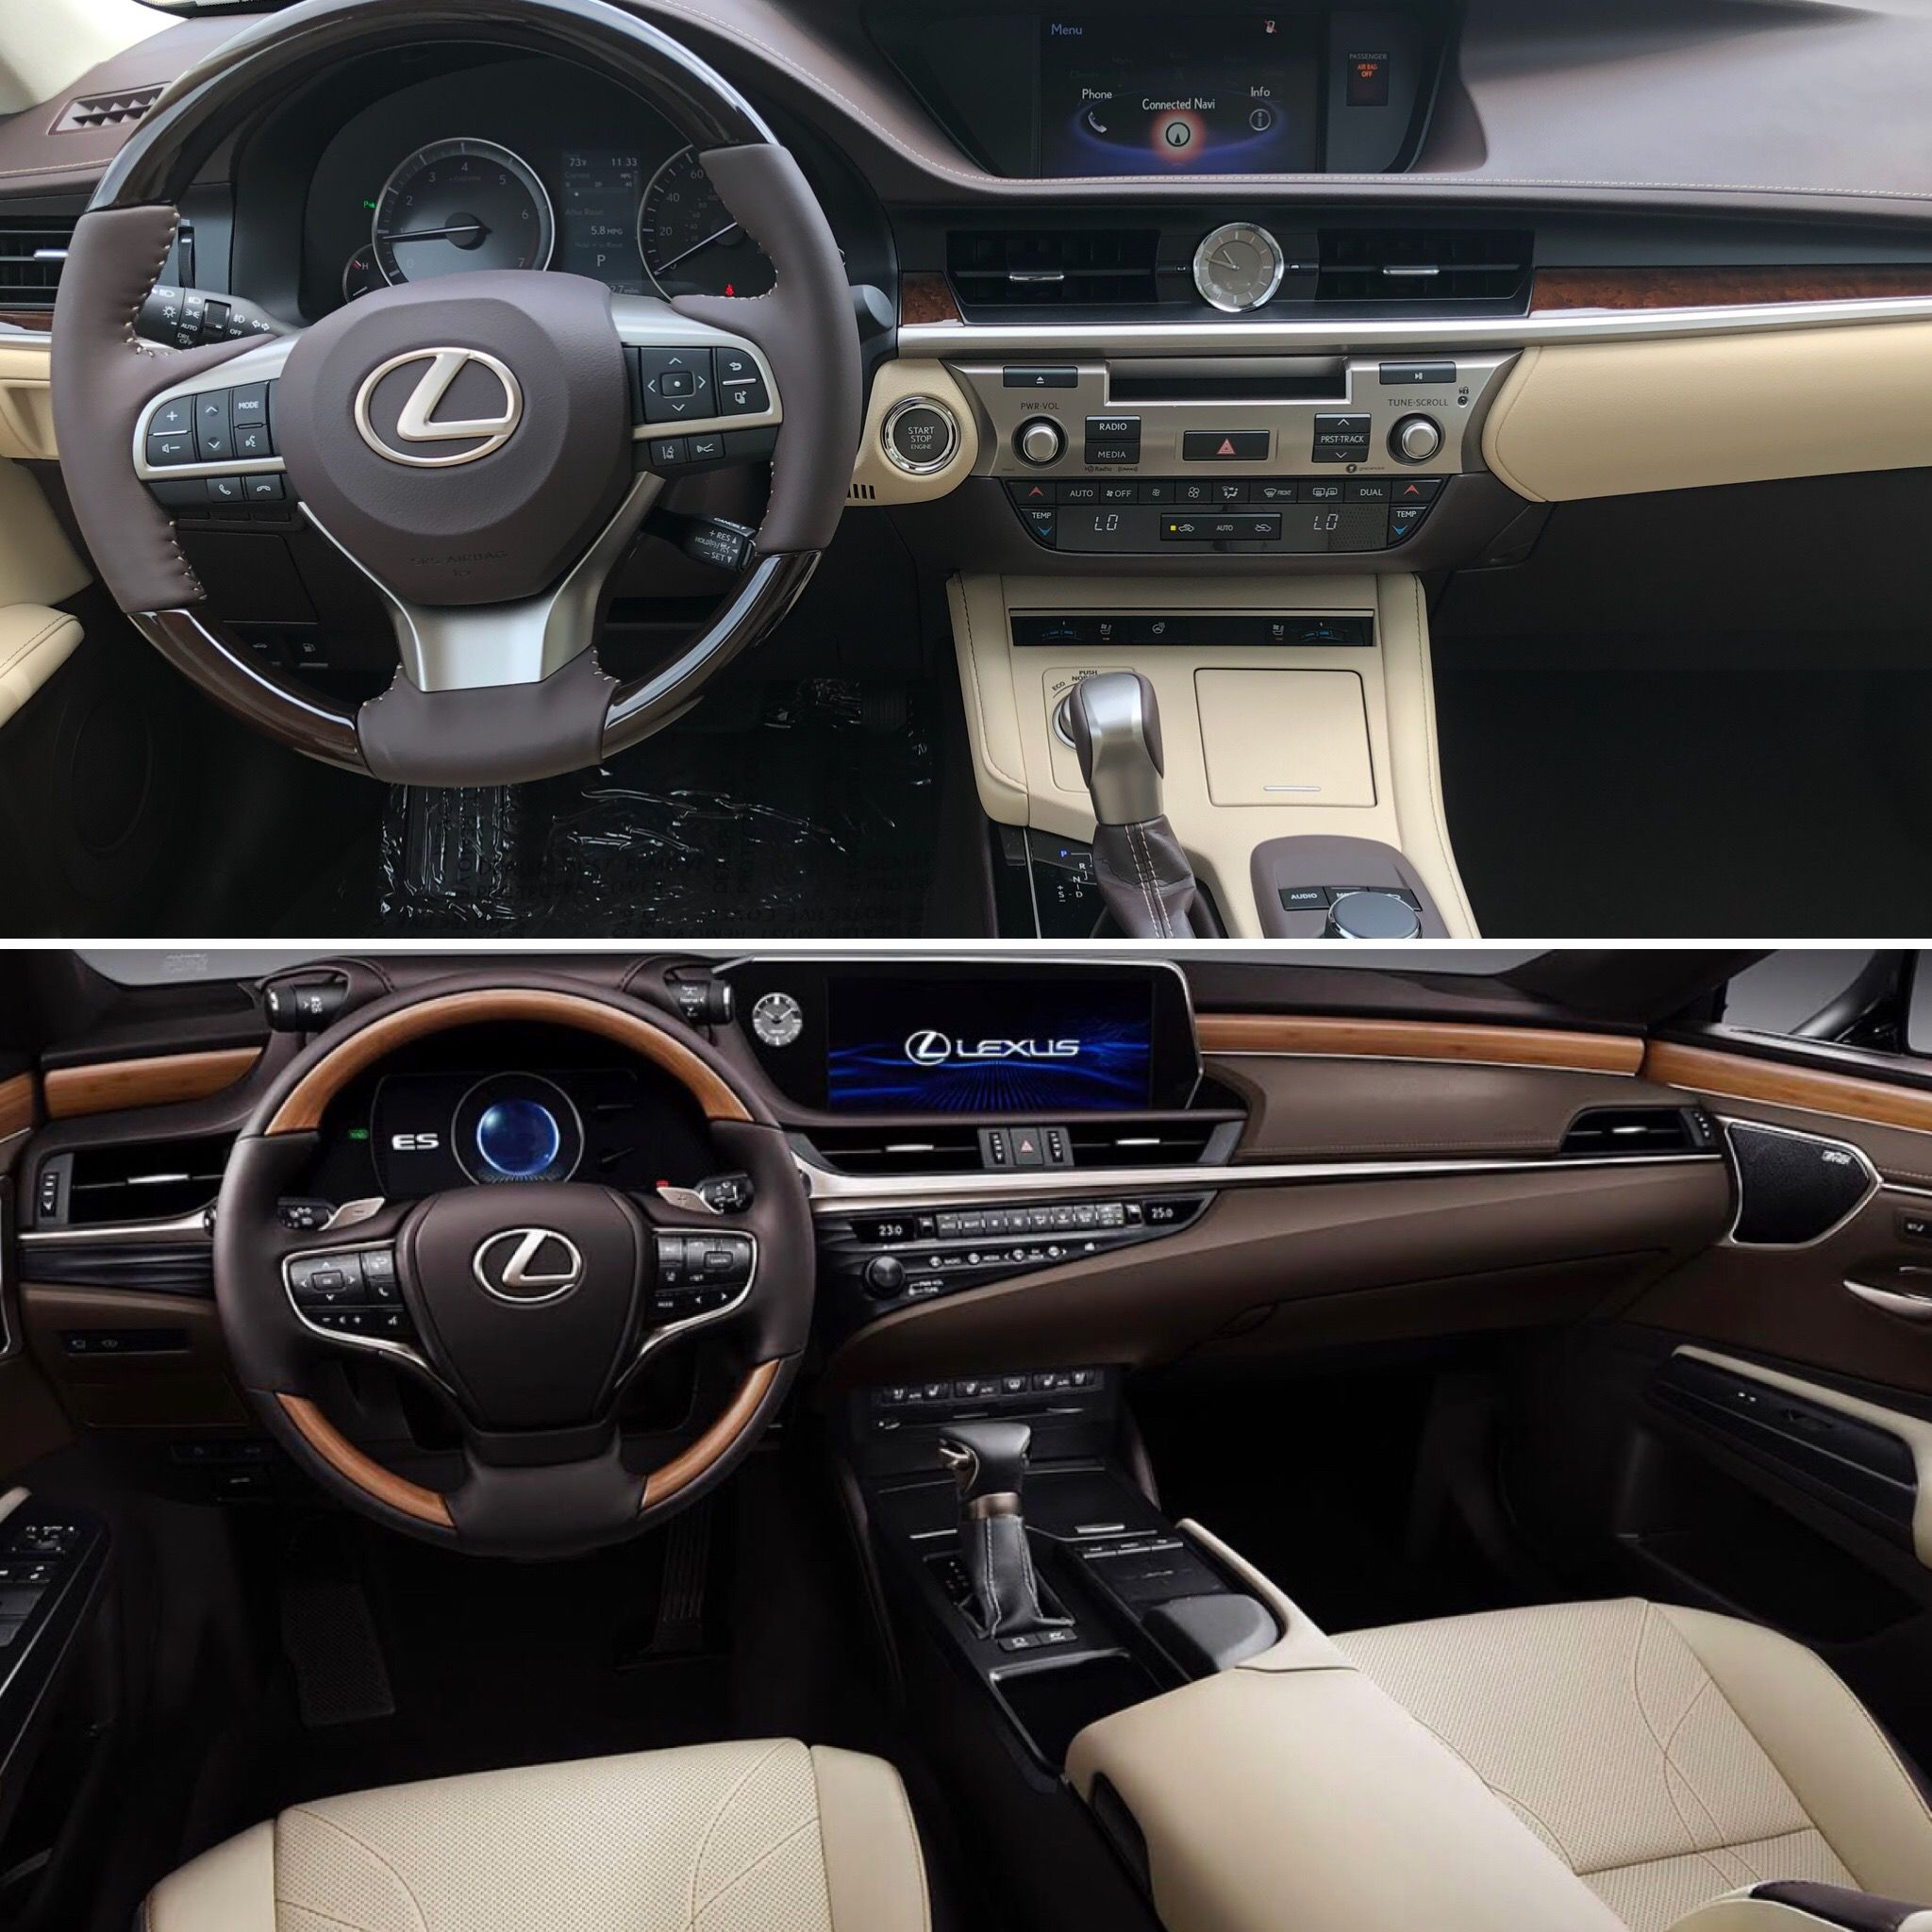 Compare The 2018 Lexus Es To The Updated 2019 Model That S Arriving This Fall At North Park Lexus Dominion